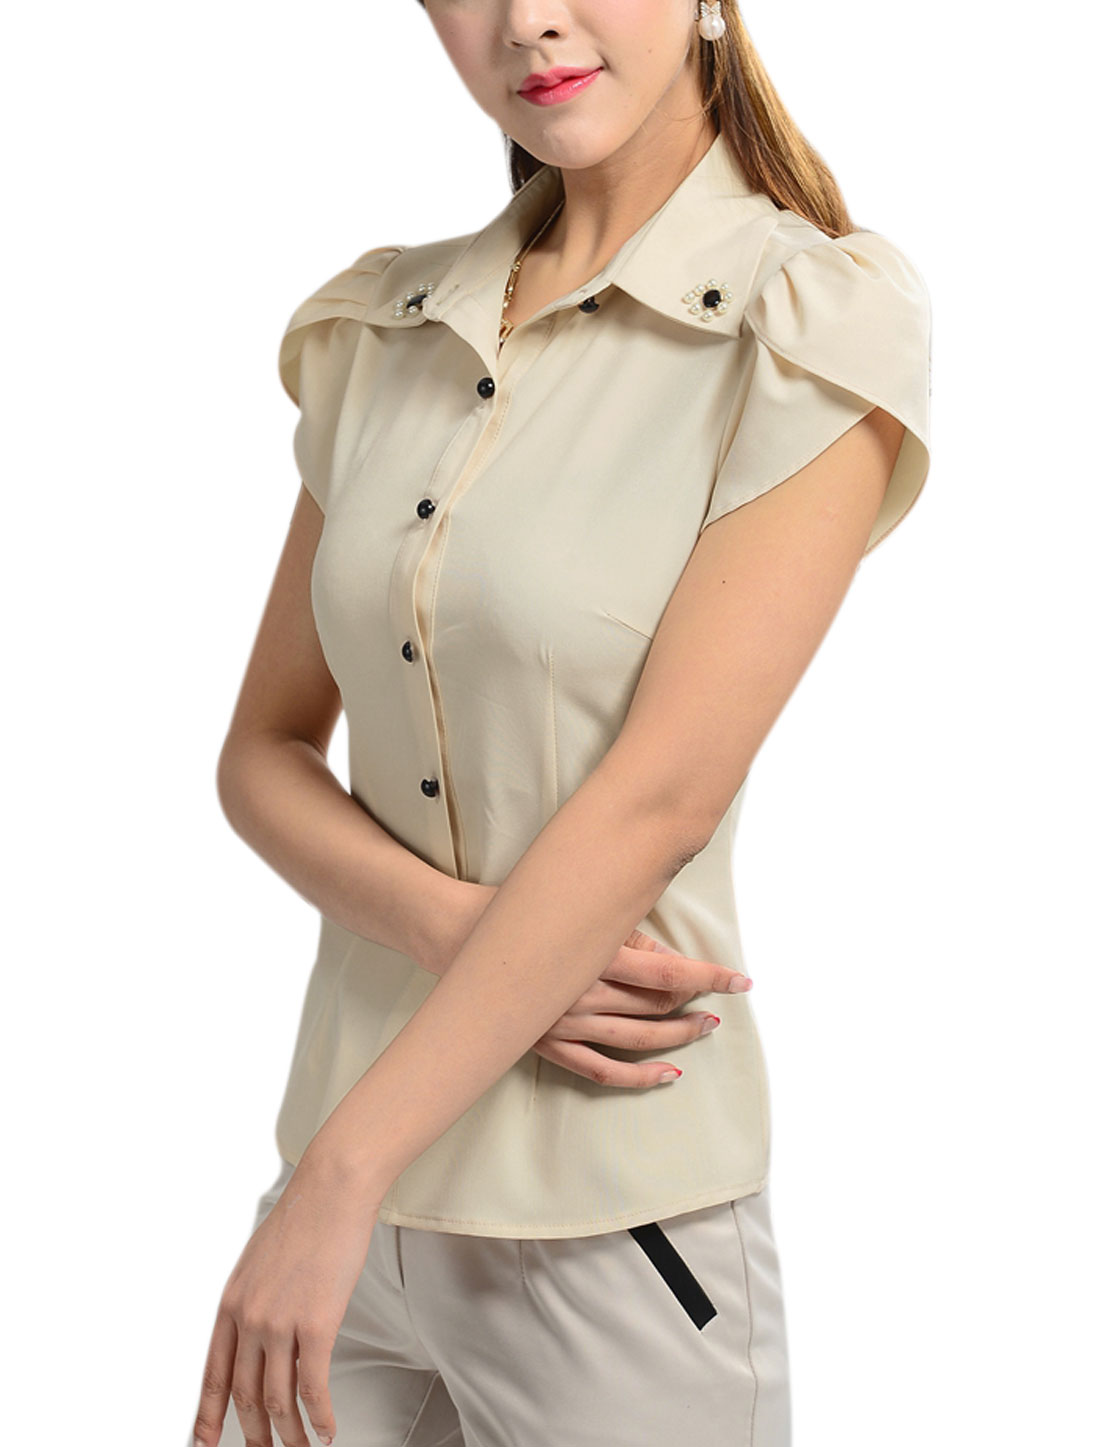 Lady Summer Petal Sleeve Fake Pearls Decor Shirt w Self Tie Strap Beige M